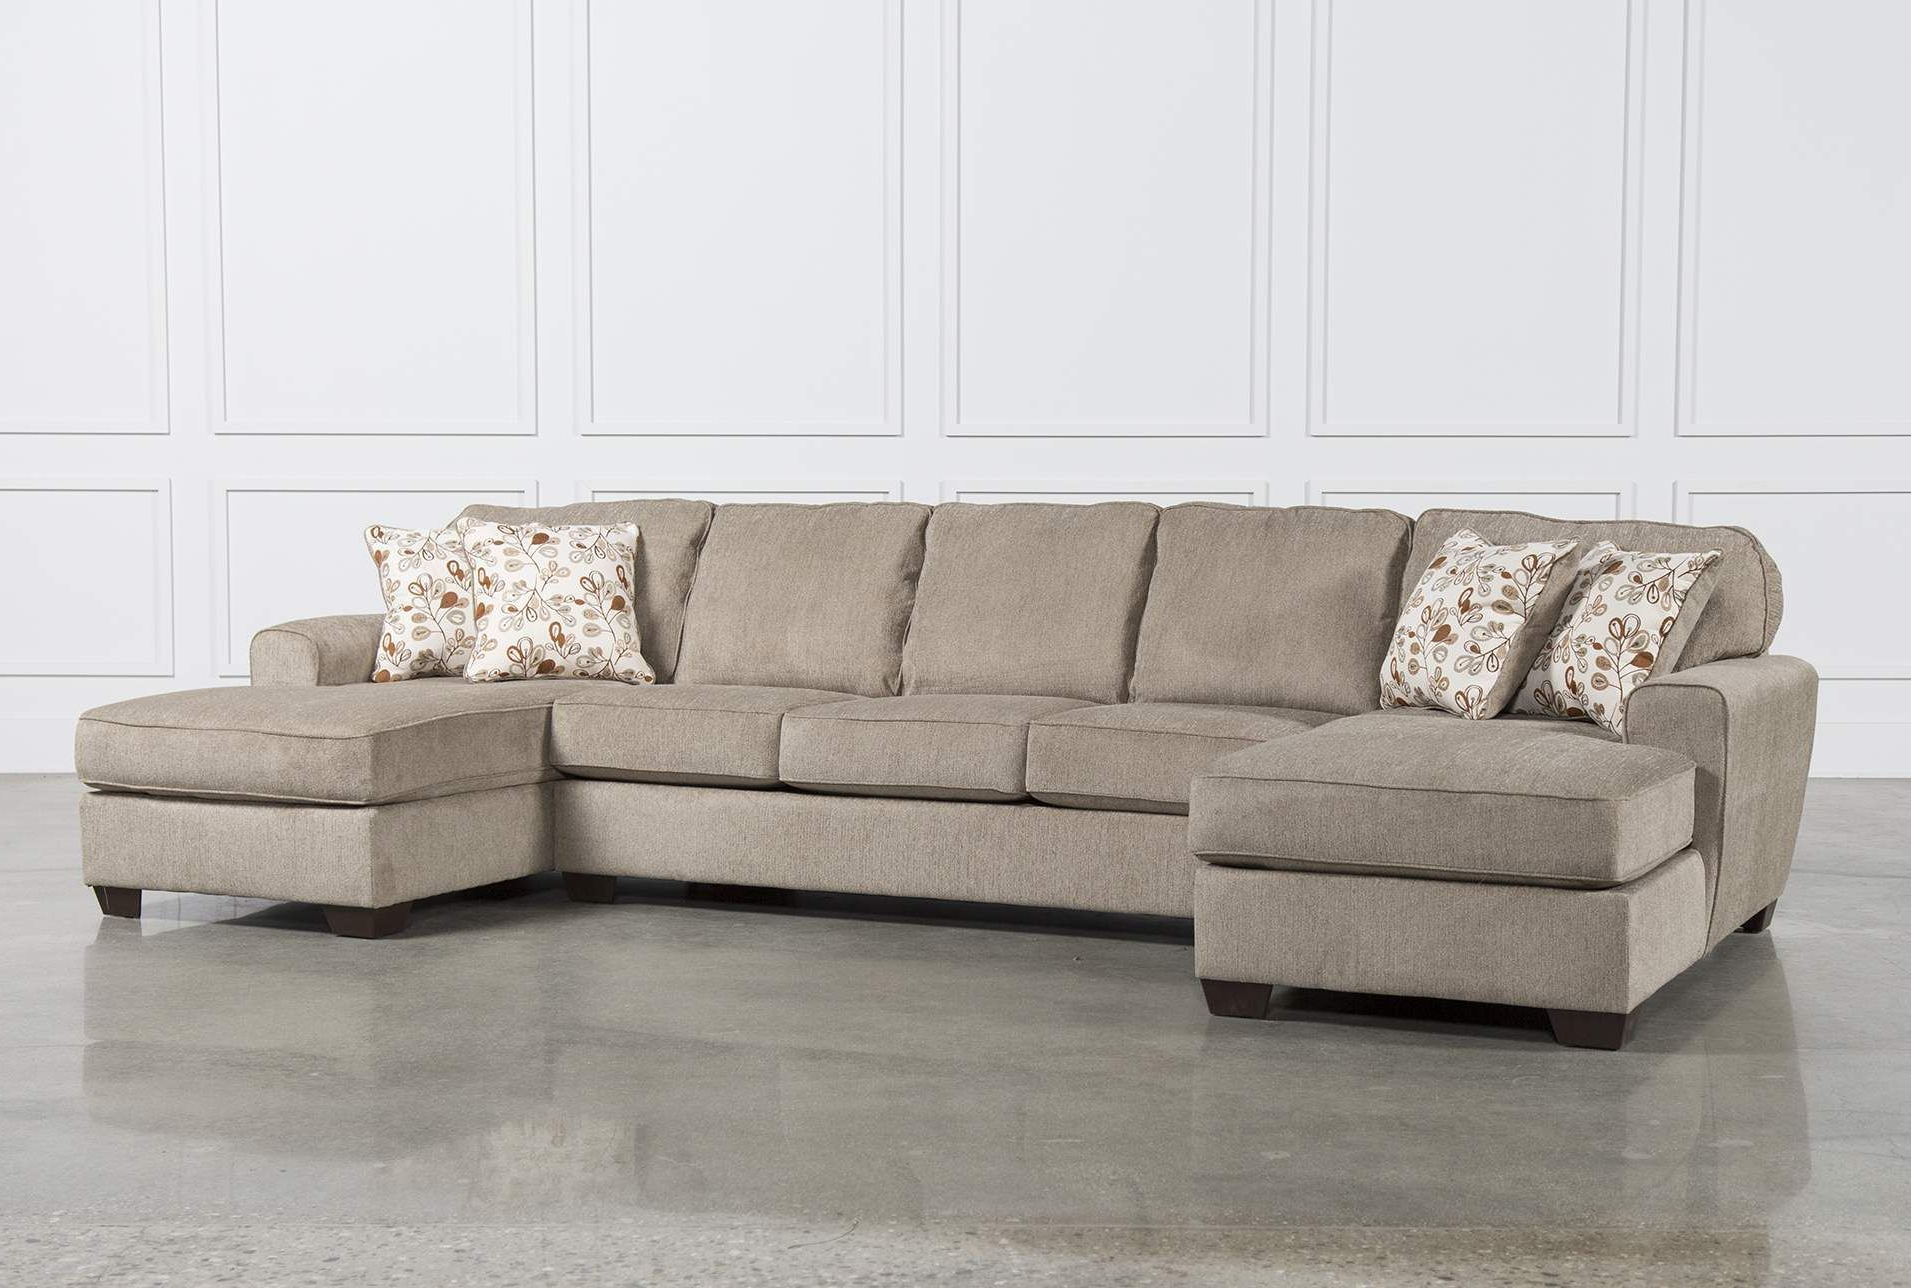 Newest Ashley Patola Park 3 Piece Sectional W/2 Corner Chaises, Brown Inside Malbry Point 3 Piece Sectionals With Laf Chaise (Gallery 2 of 20)